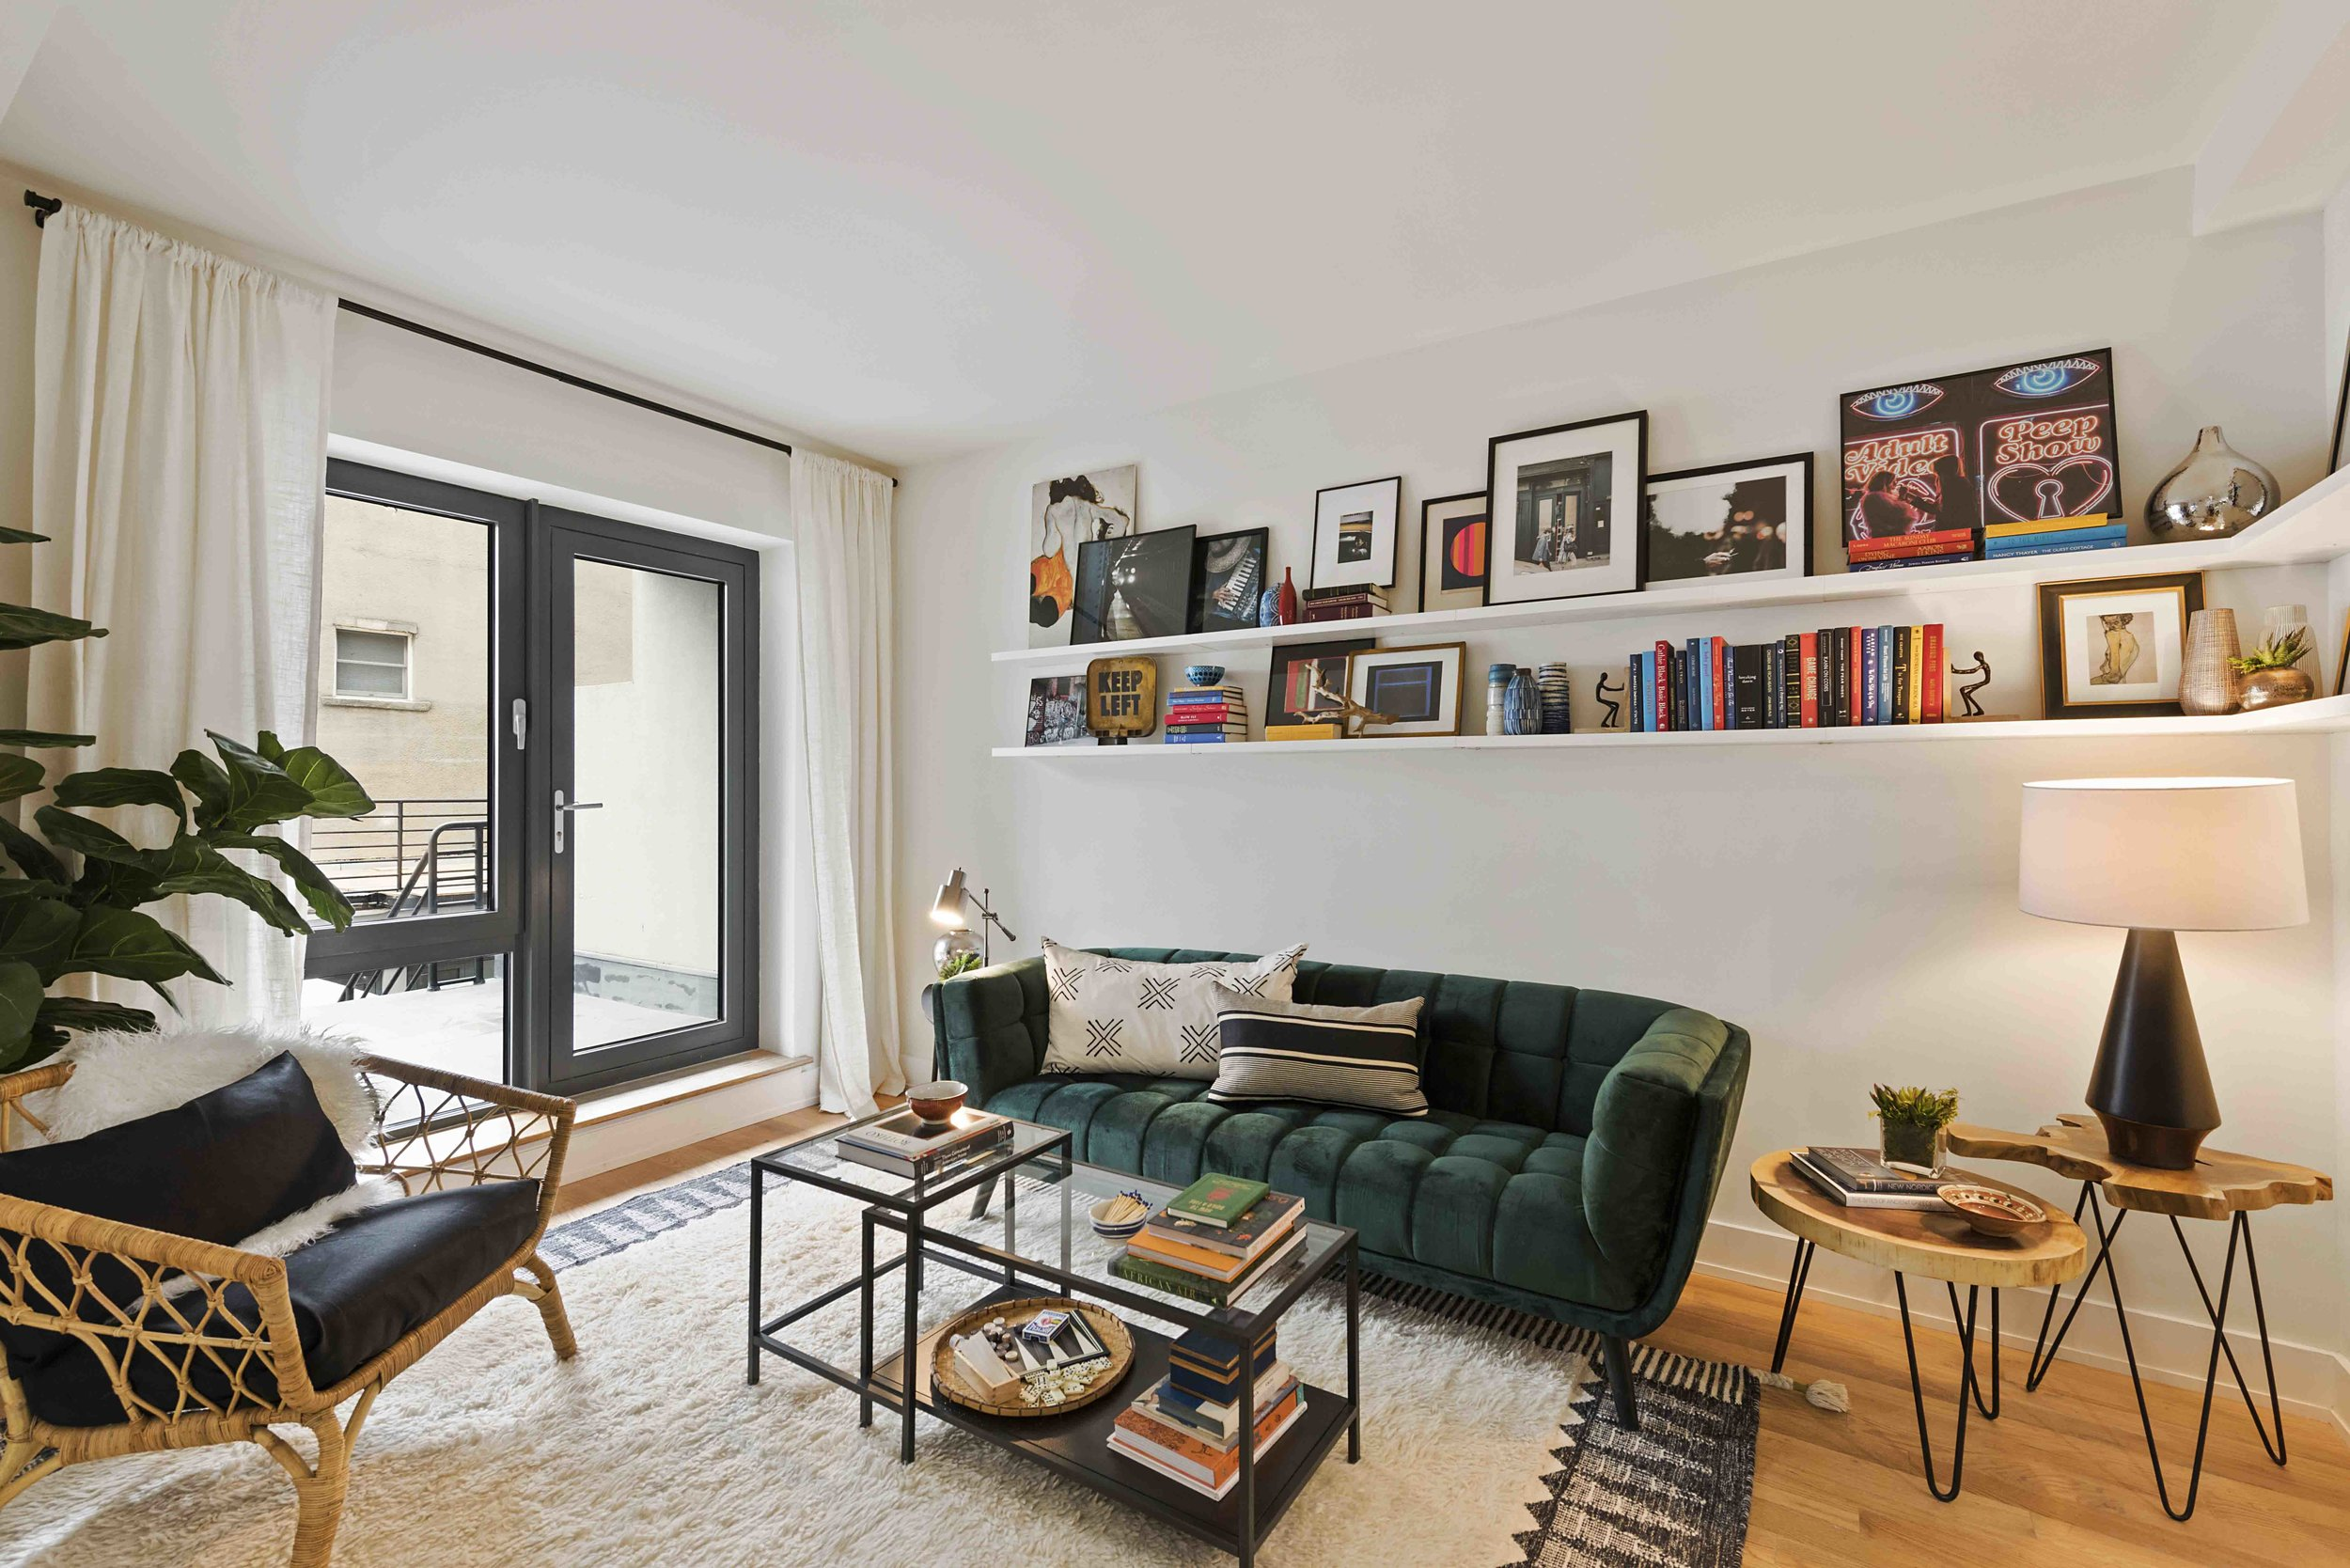 Now talk about color! Not only does the dark green hue of the sofa shine here but the span of color continues along white shelving to pull the eye around this two-story apartment located in Greenpoint, Brooklyn.